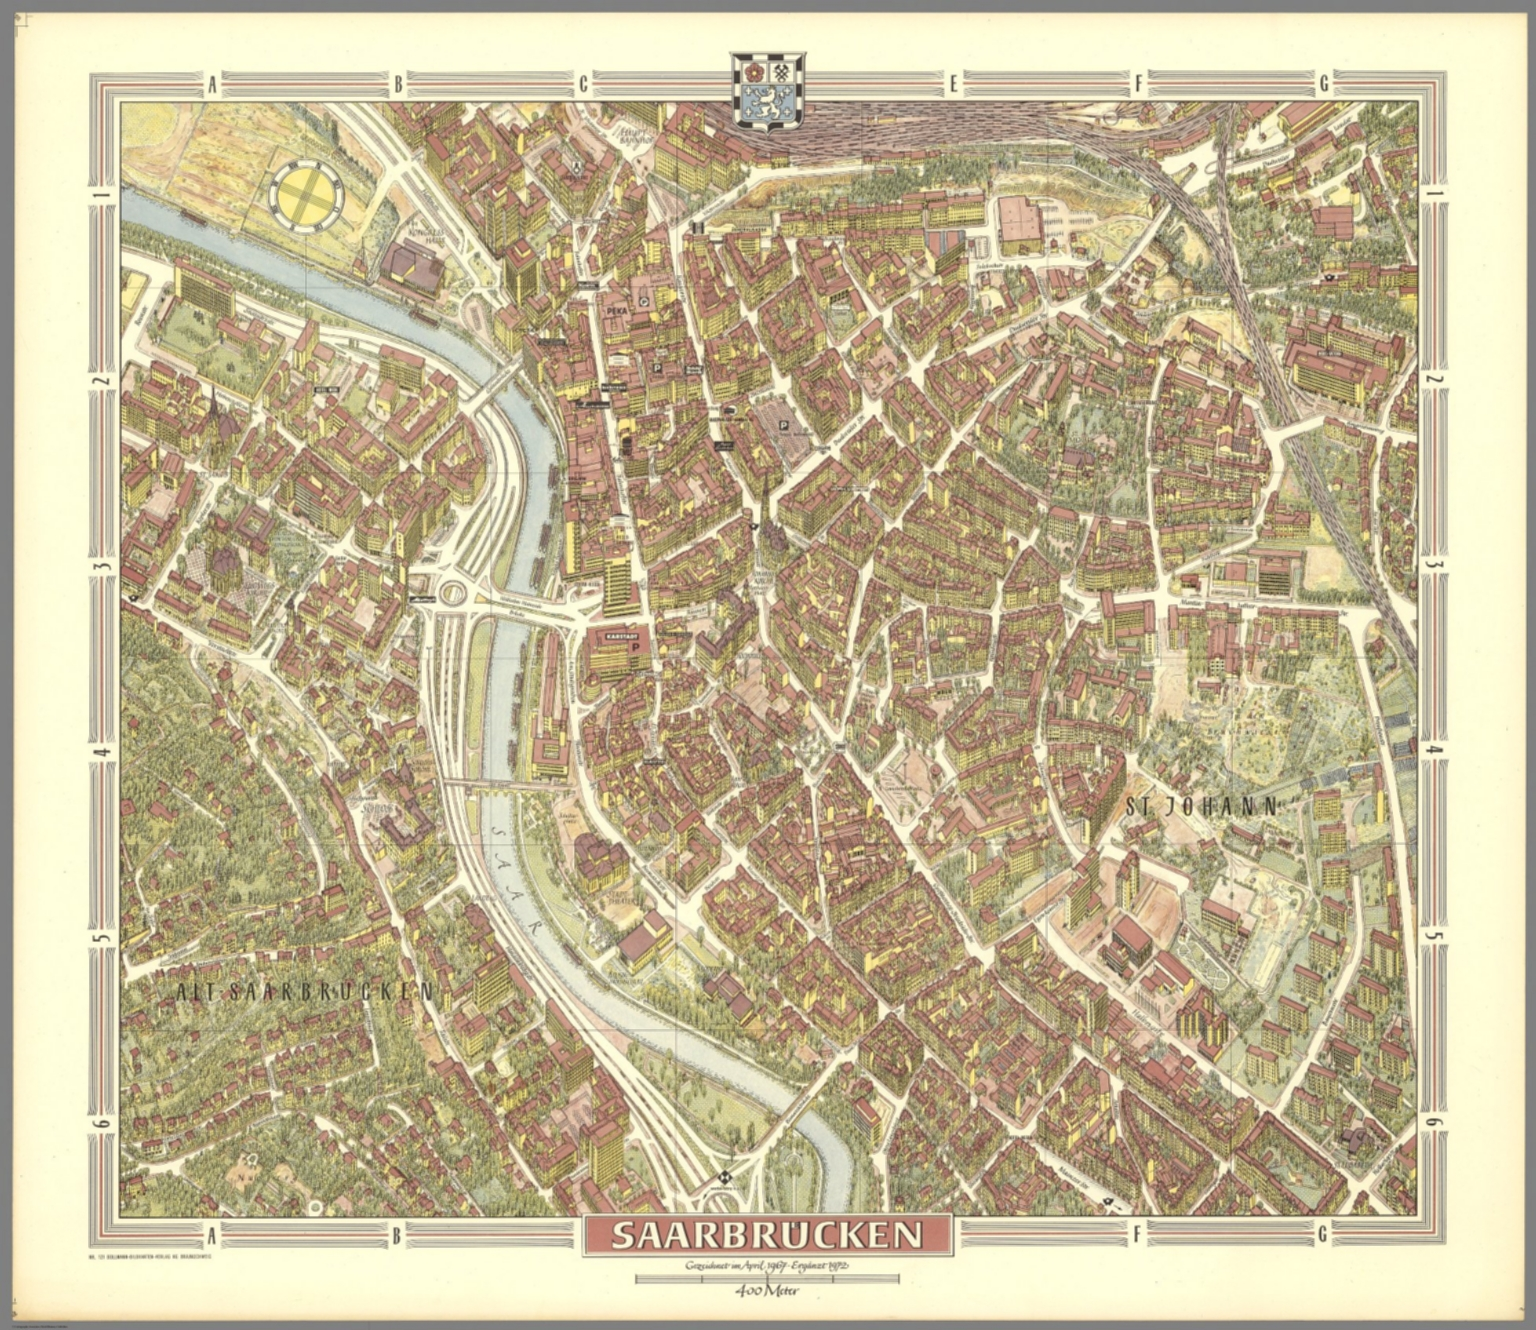 Saarbrucken Germany Map.Saarbruecken Germany David Rumsey Historical Map Collection